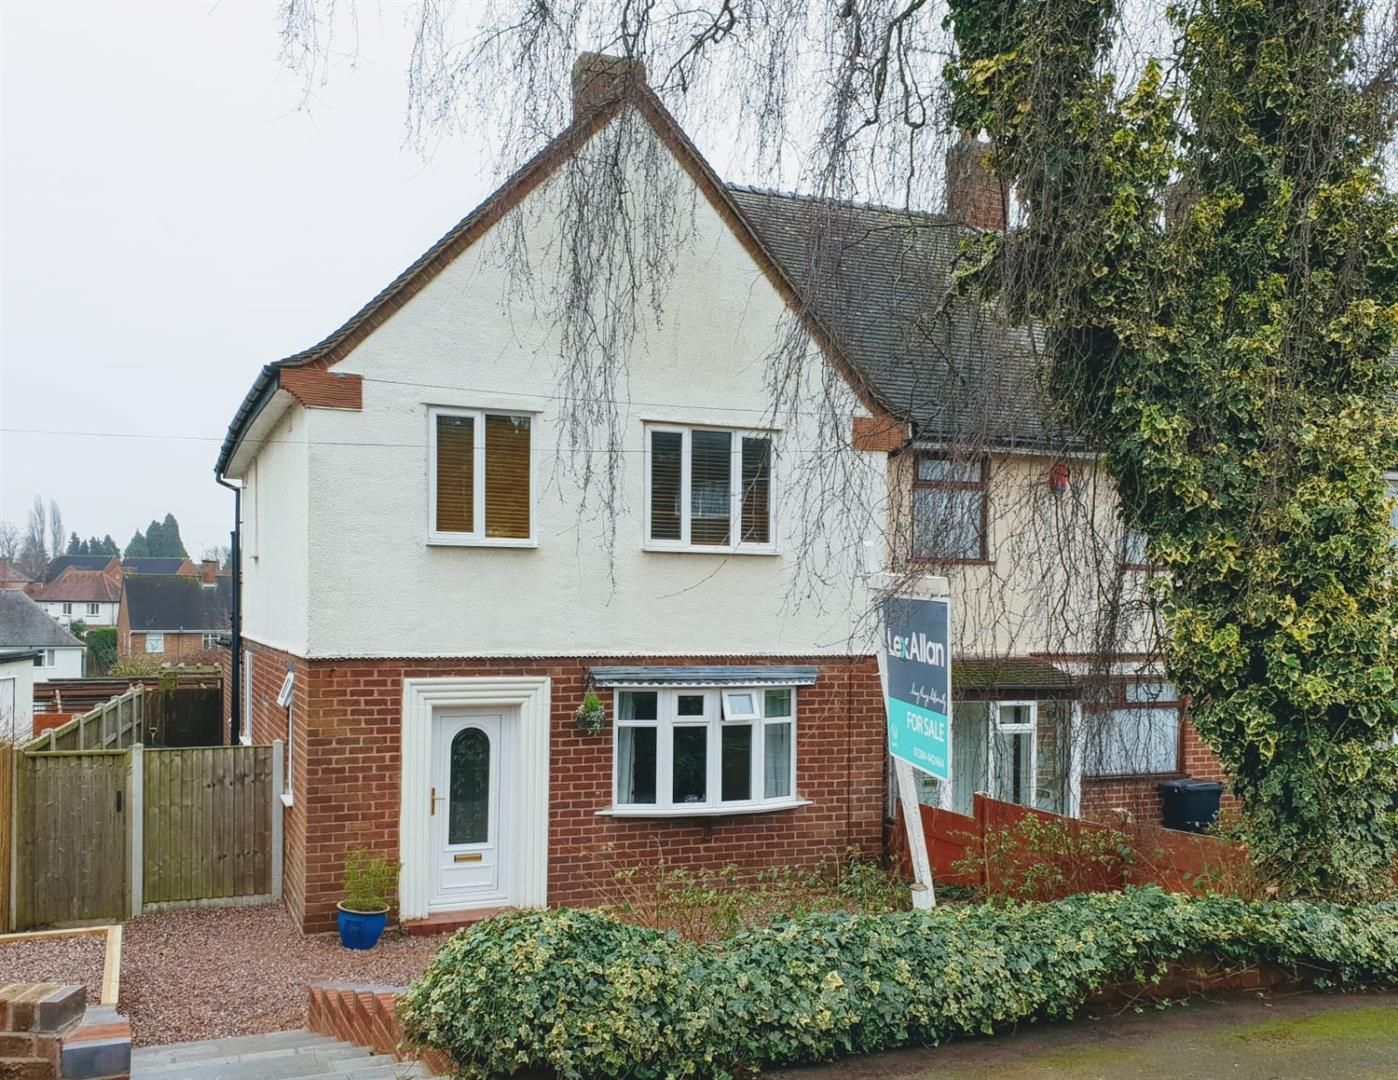 3 bed end-of-terrace for sale, DY8